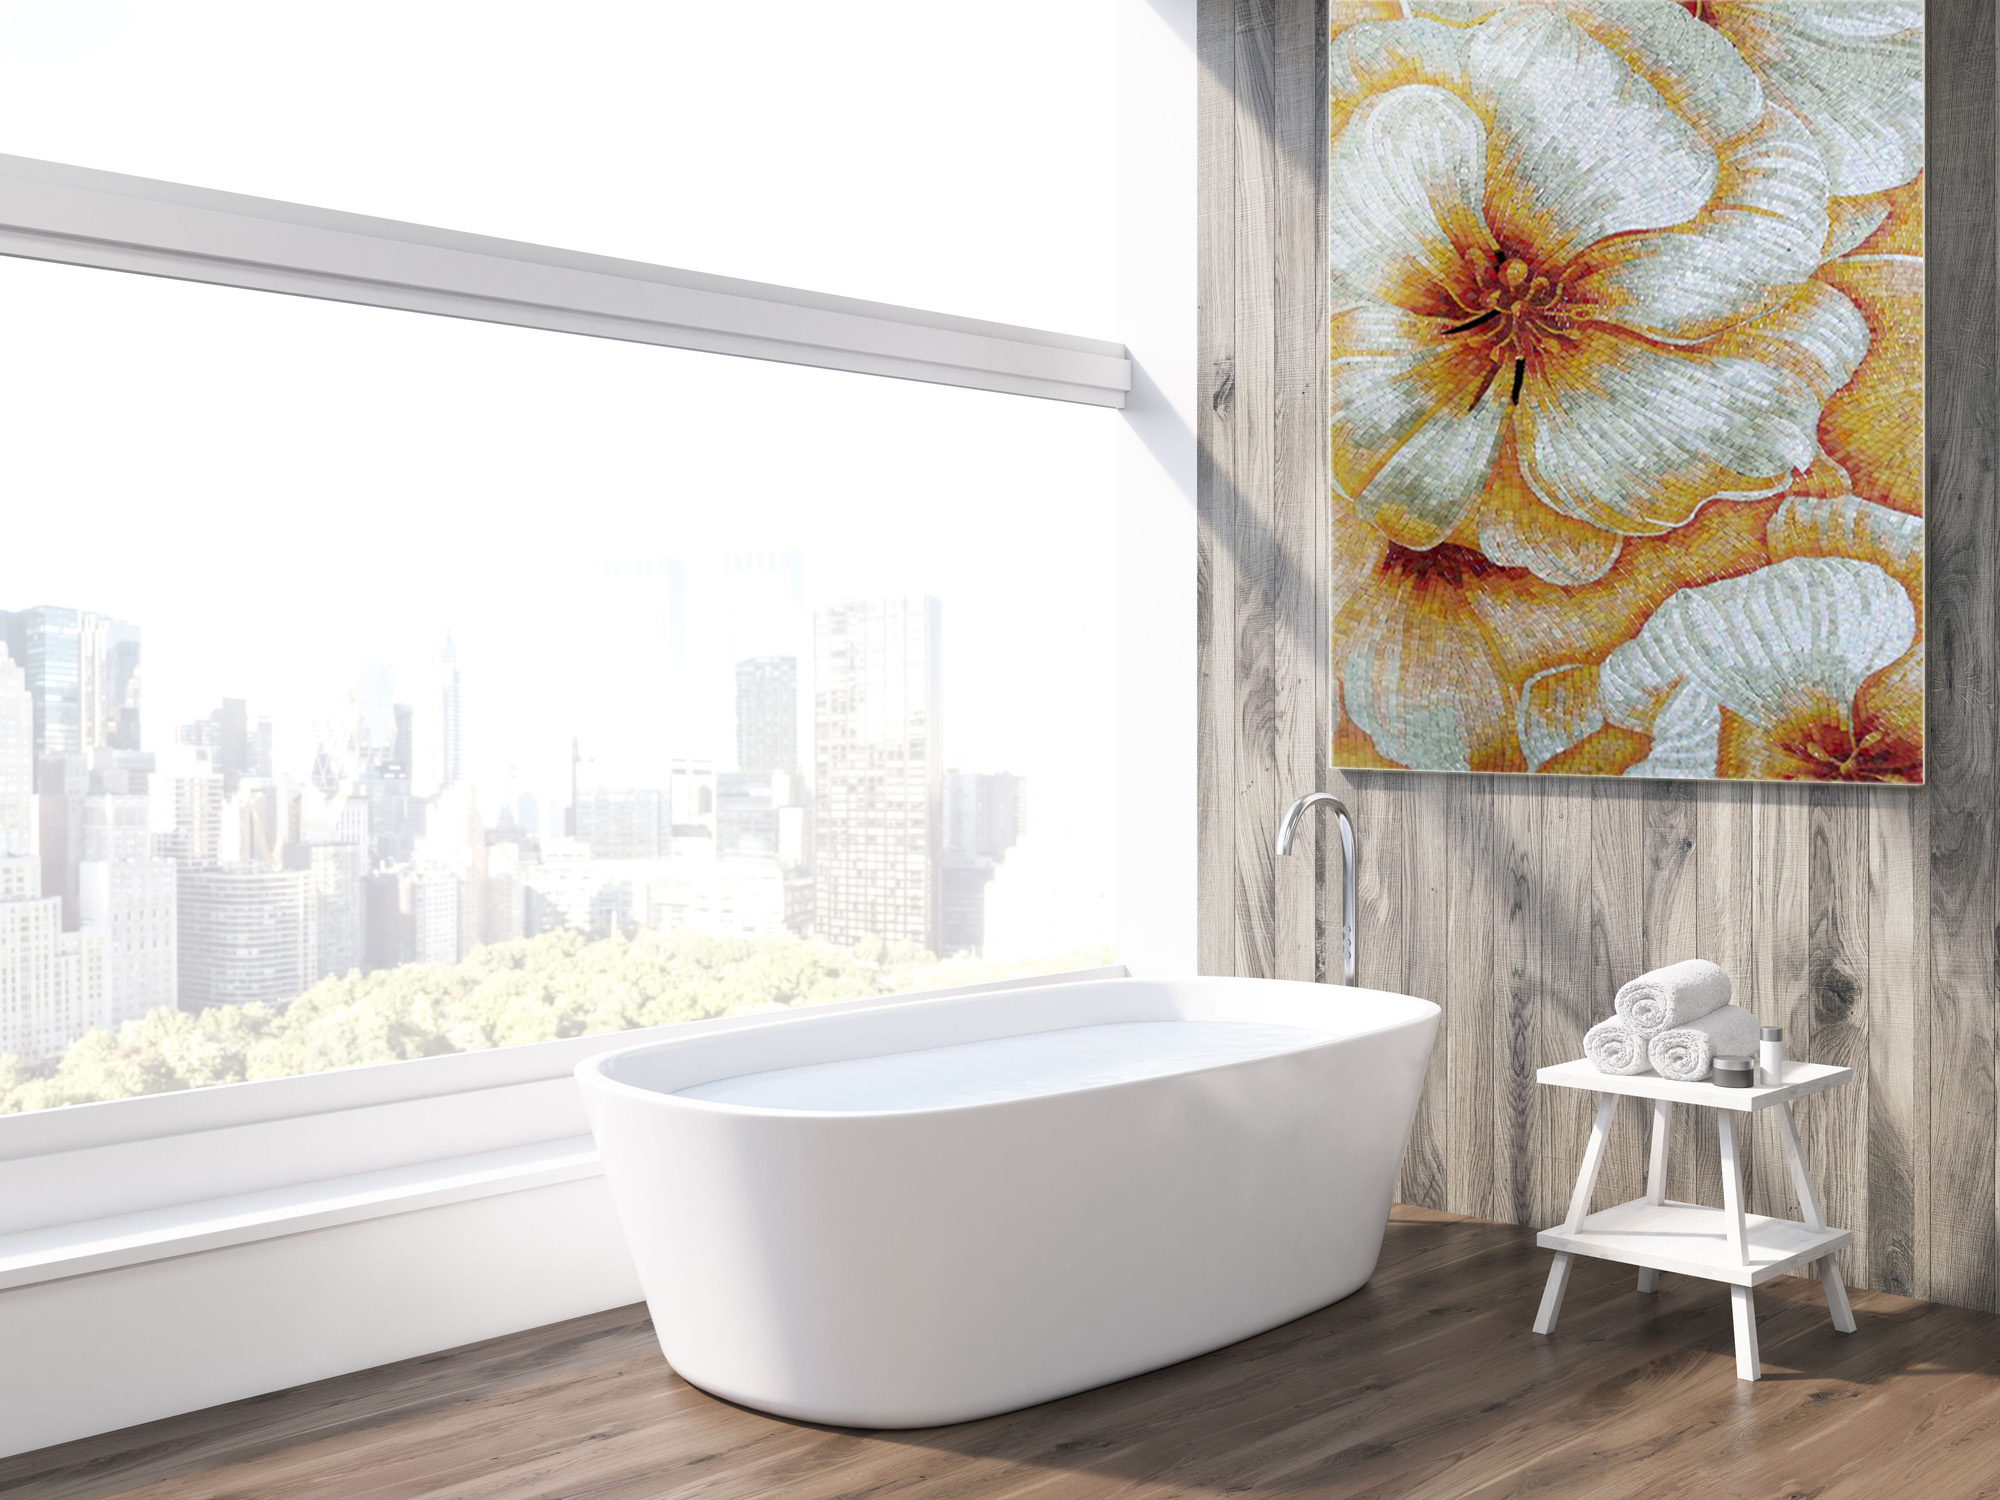 Bathroom-Mosaic-Art-Floral-